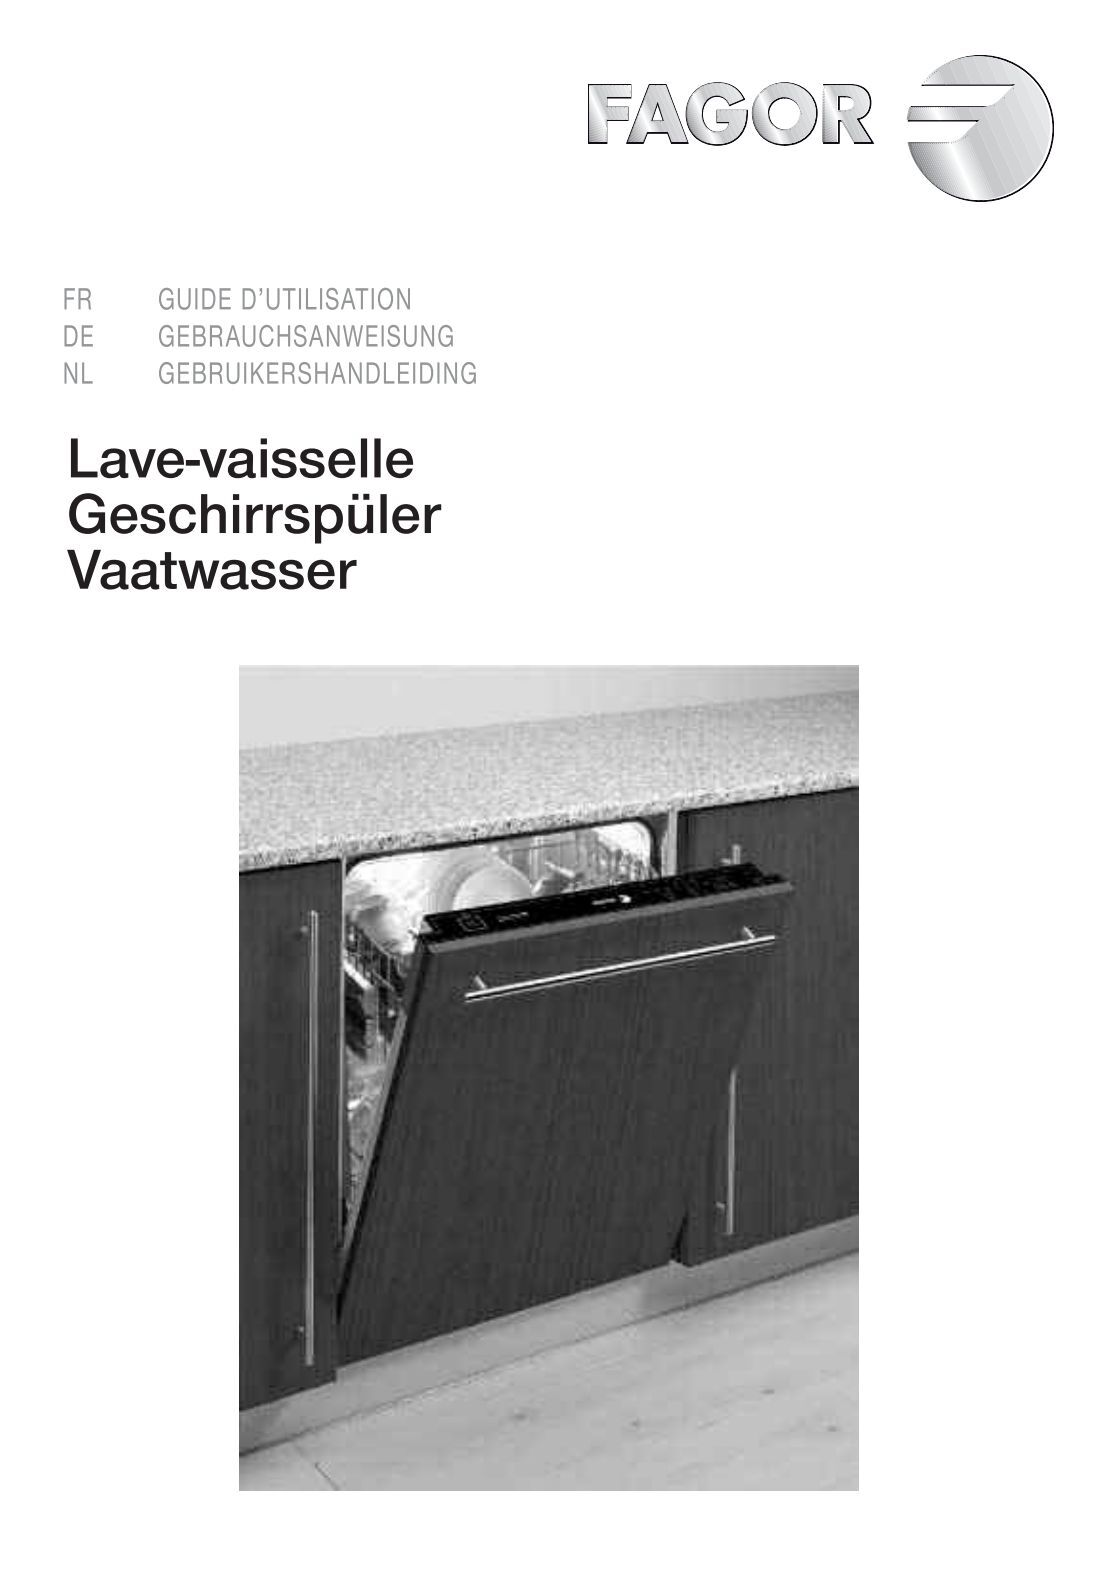 10 free magazines from fagorbenelux nl. Black Bedroom Furniture Sets. Home Design Ideas